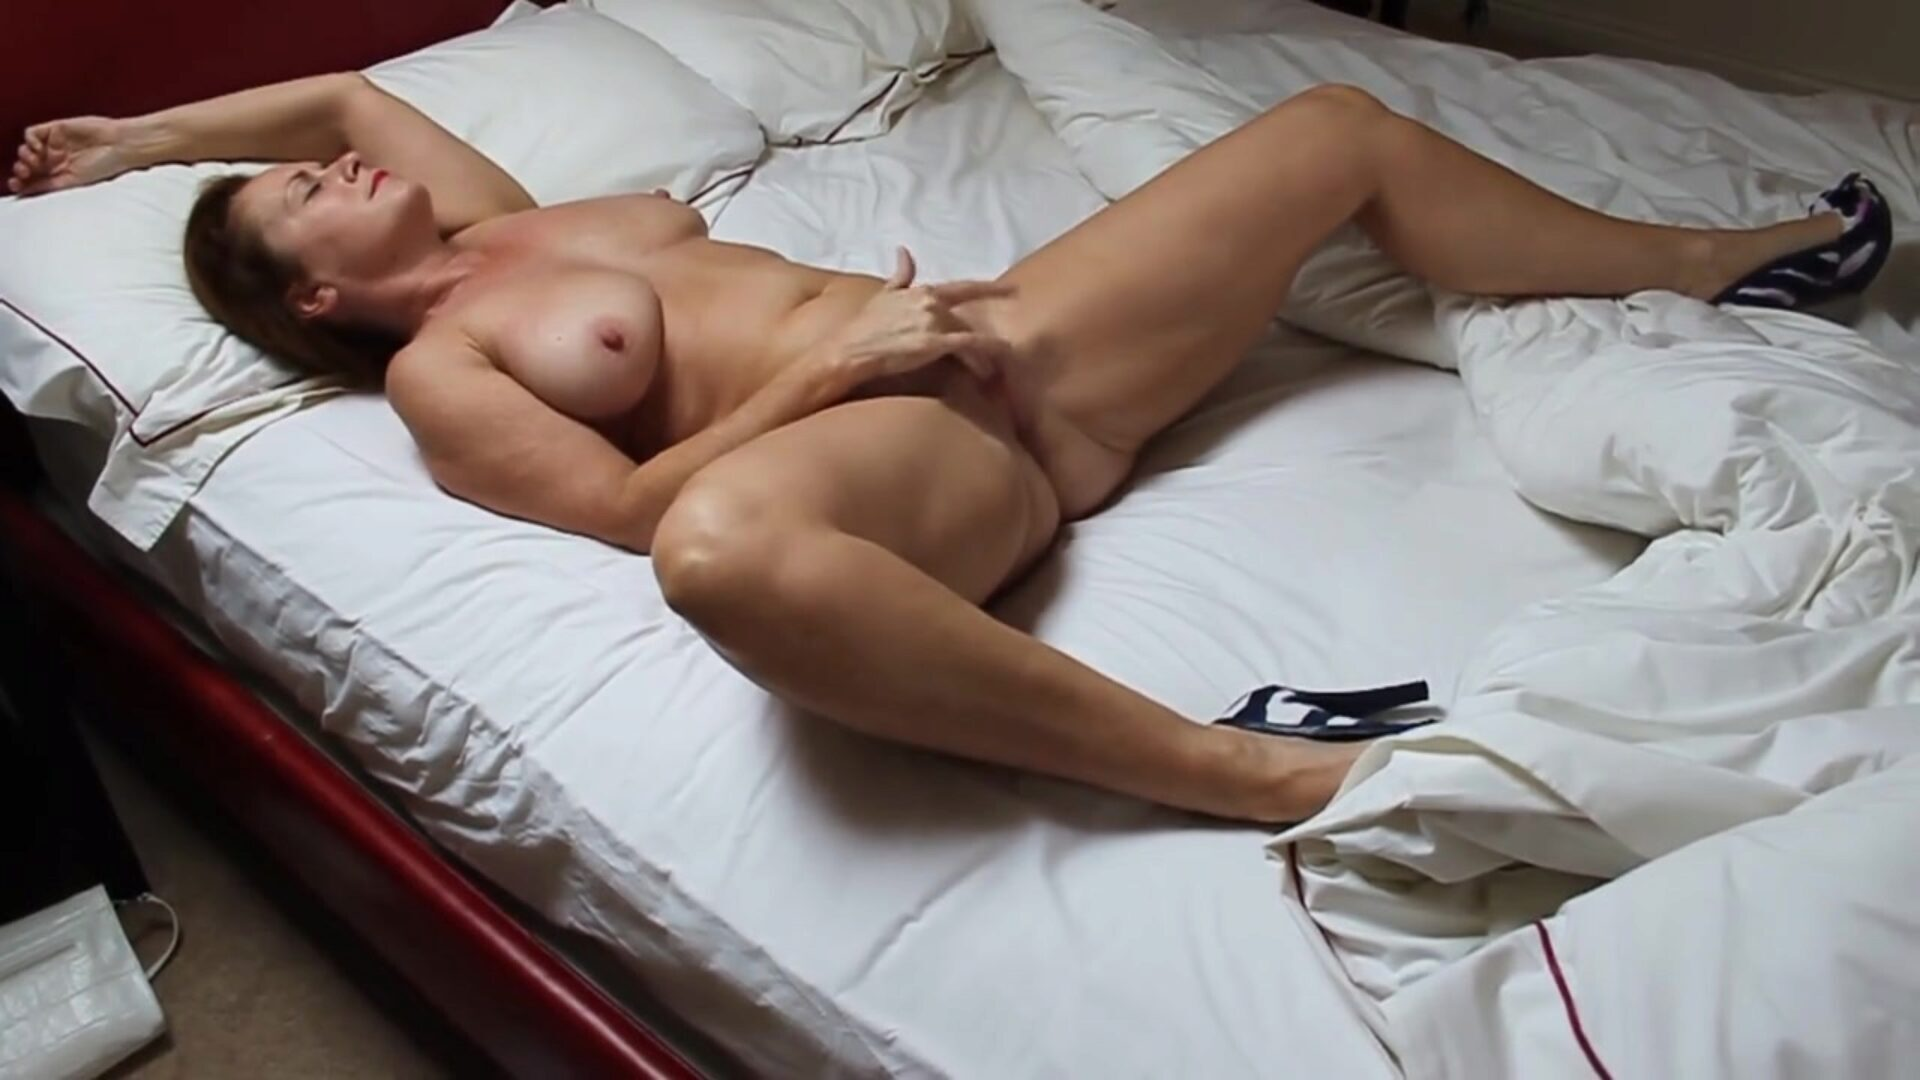 Wife at home fingering herself Love watching her climax What would u like to do to her